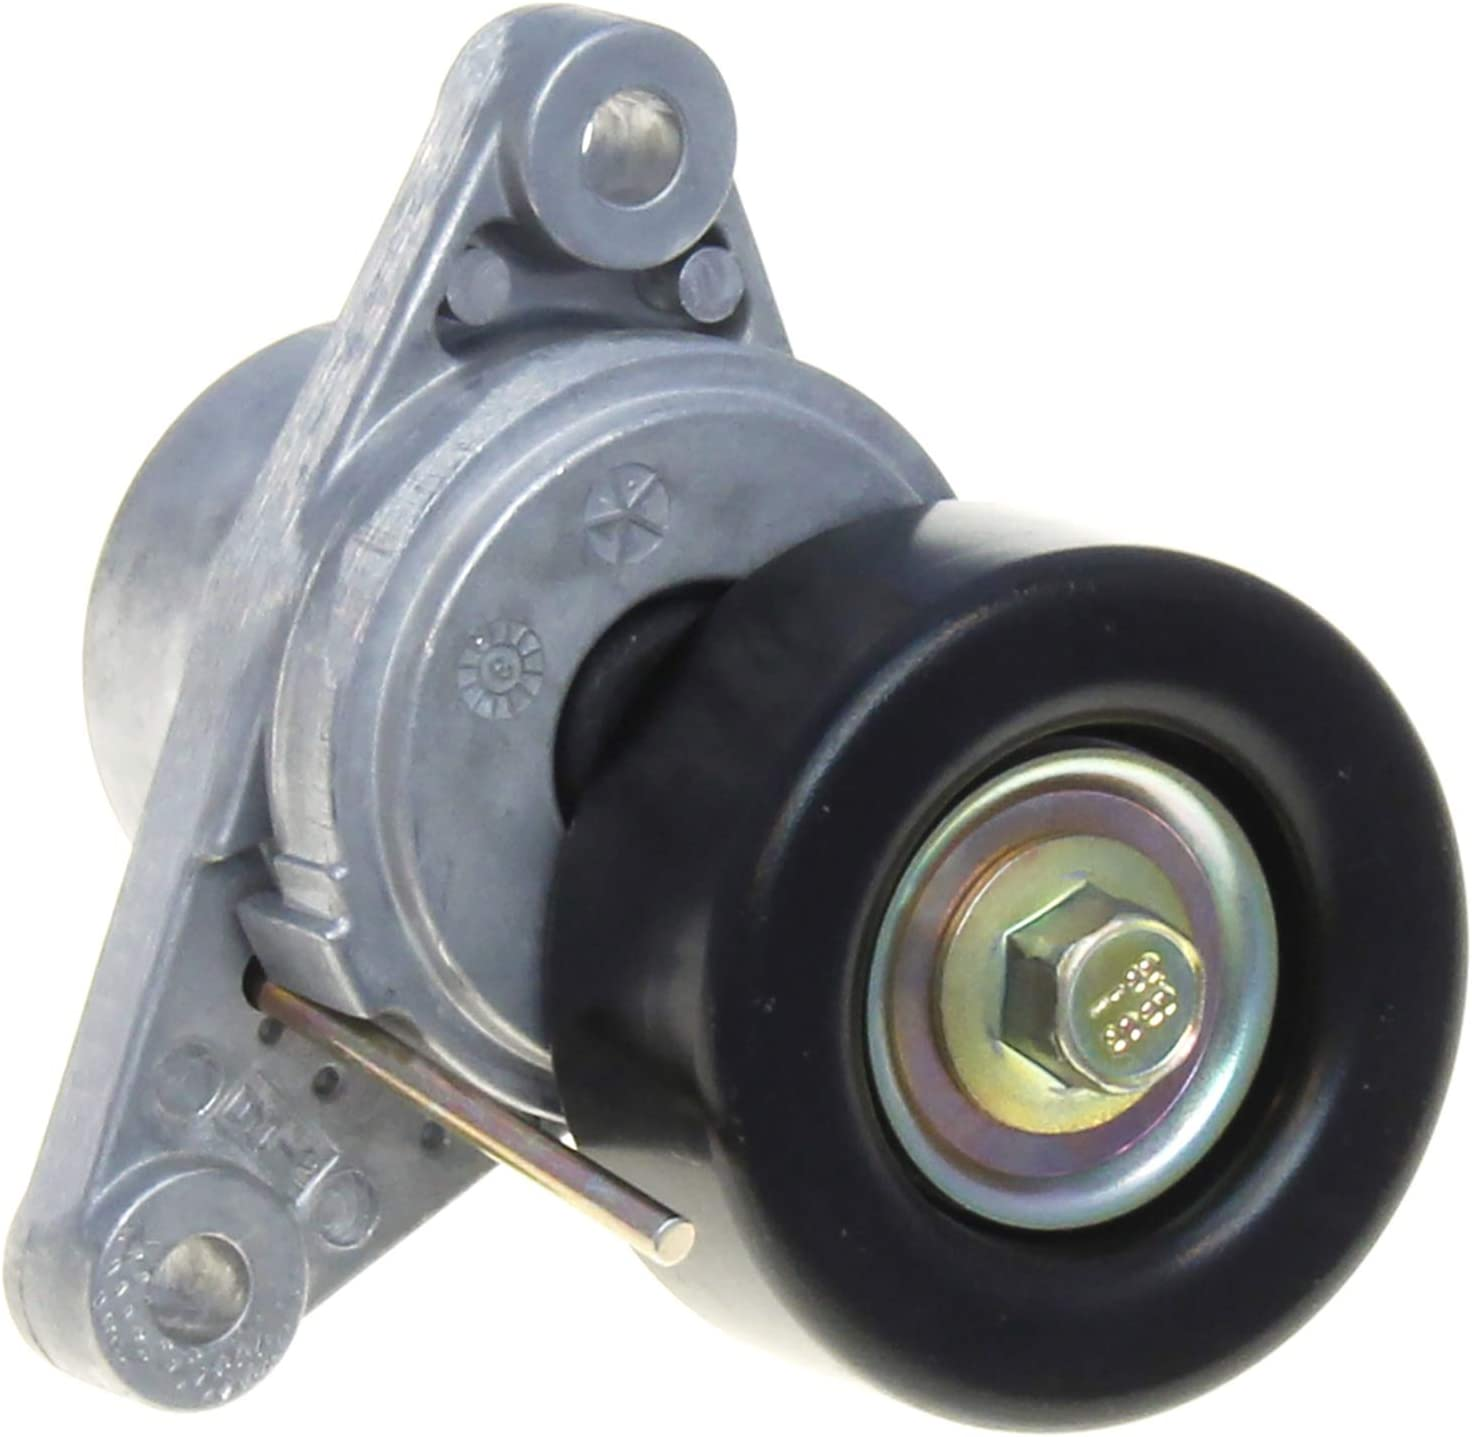 ACDelco Professional 38273 Max 56% OFF New item Drive Belt Tensioner Pu Assembly with